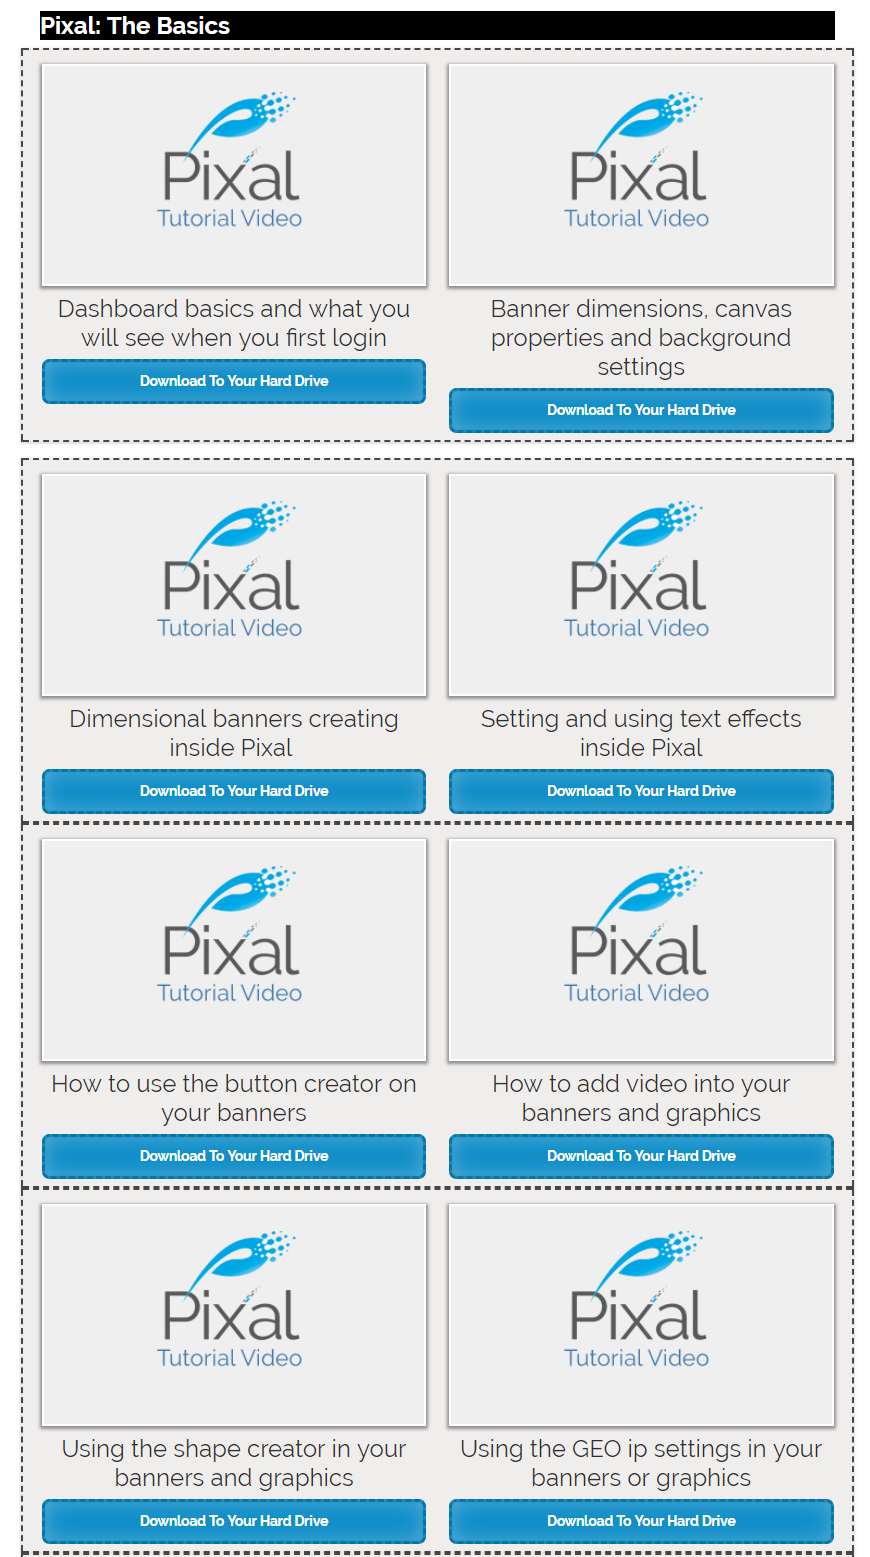 Pixal-Evolution-review-bonuses-conyeco.com-lanzapodcast-lucasvalera-tutorials-2